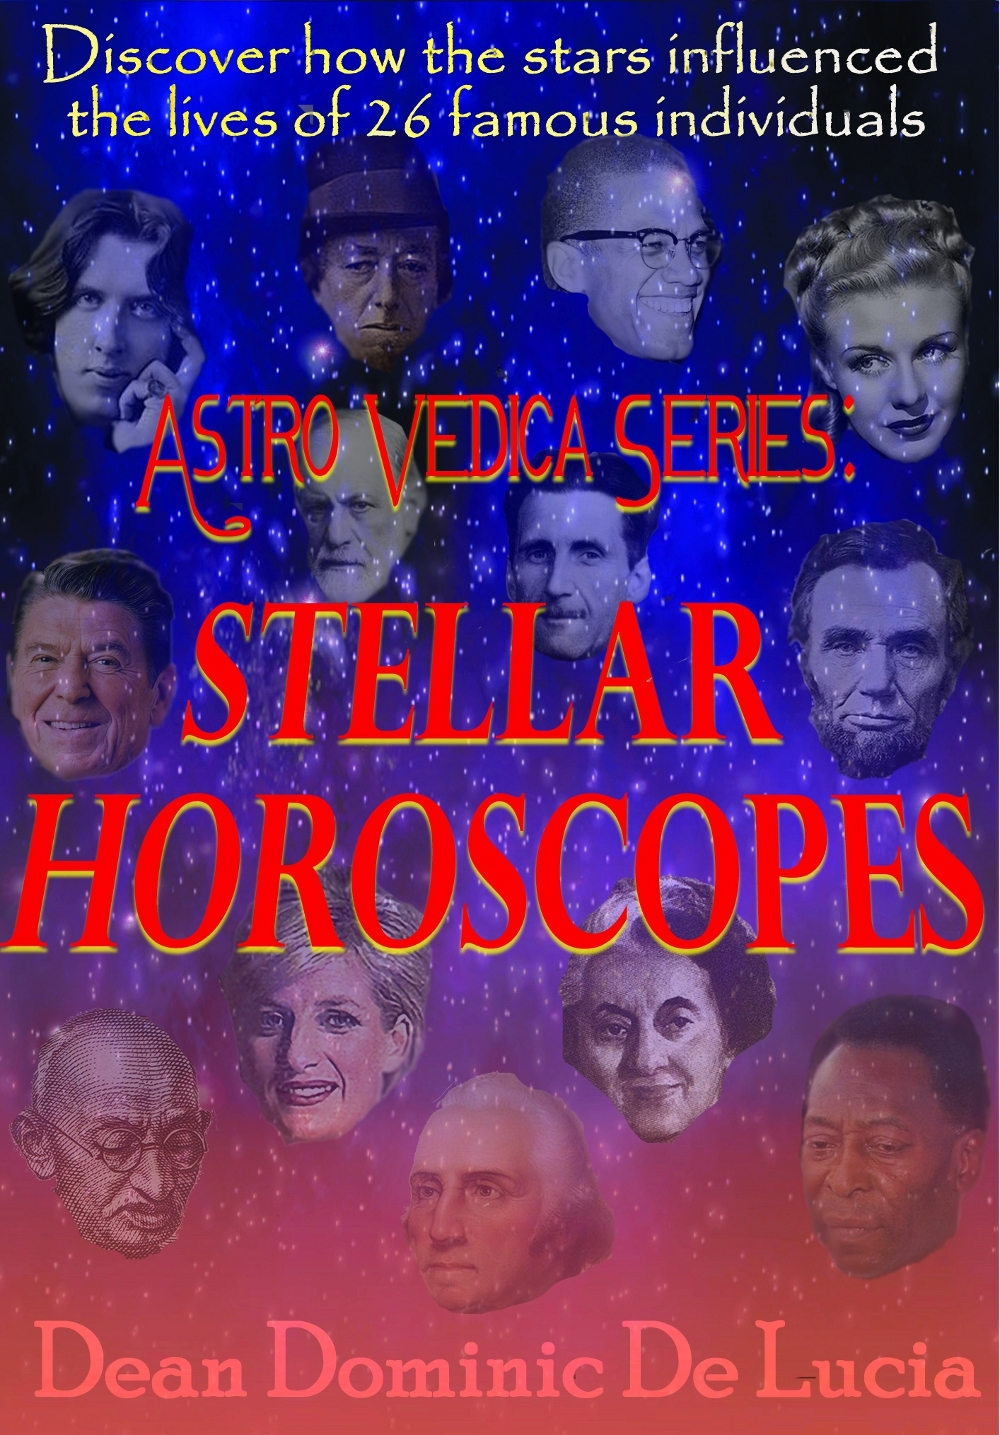 Astro Vedica Series: Stellar Horoscopes